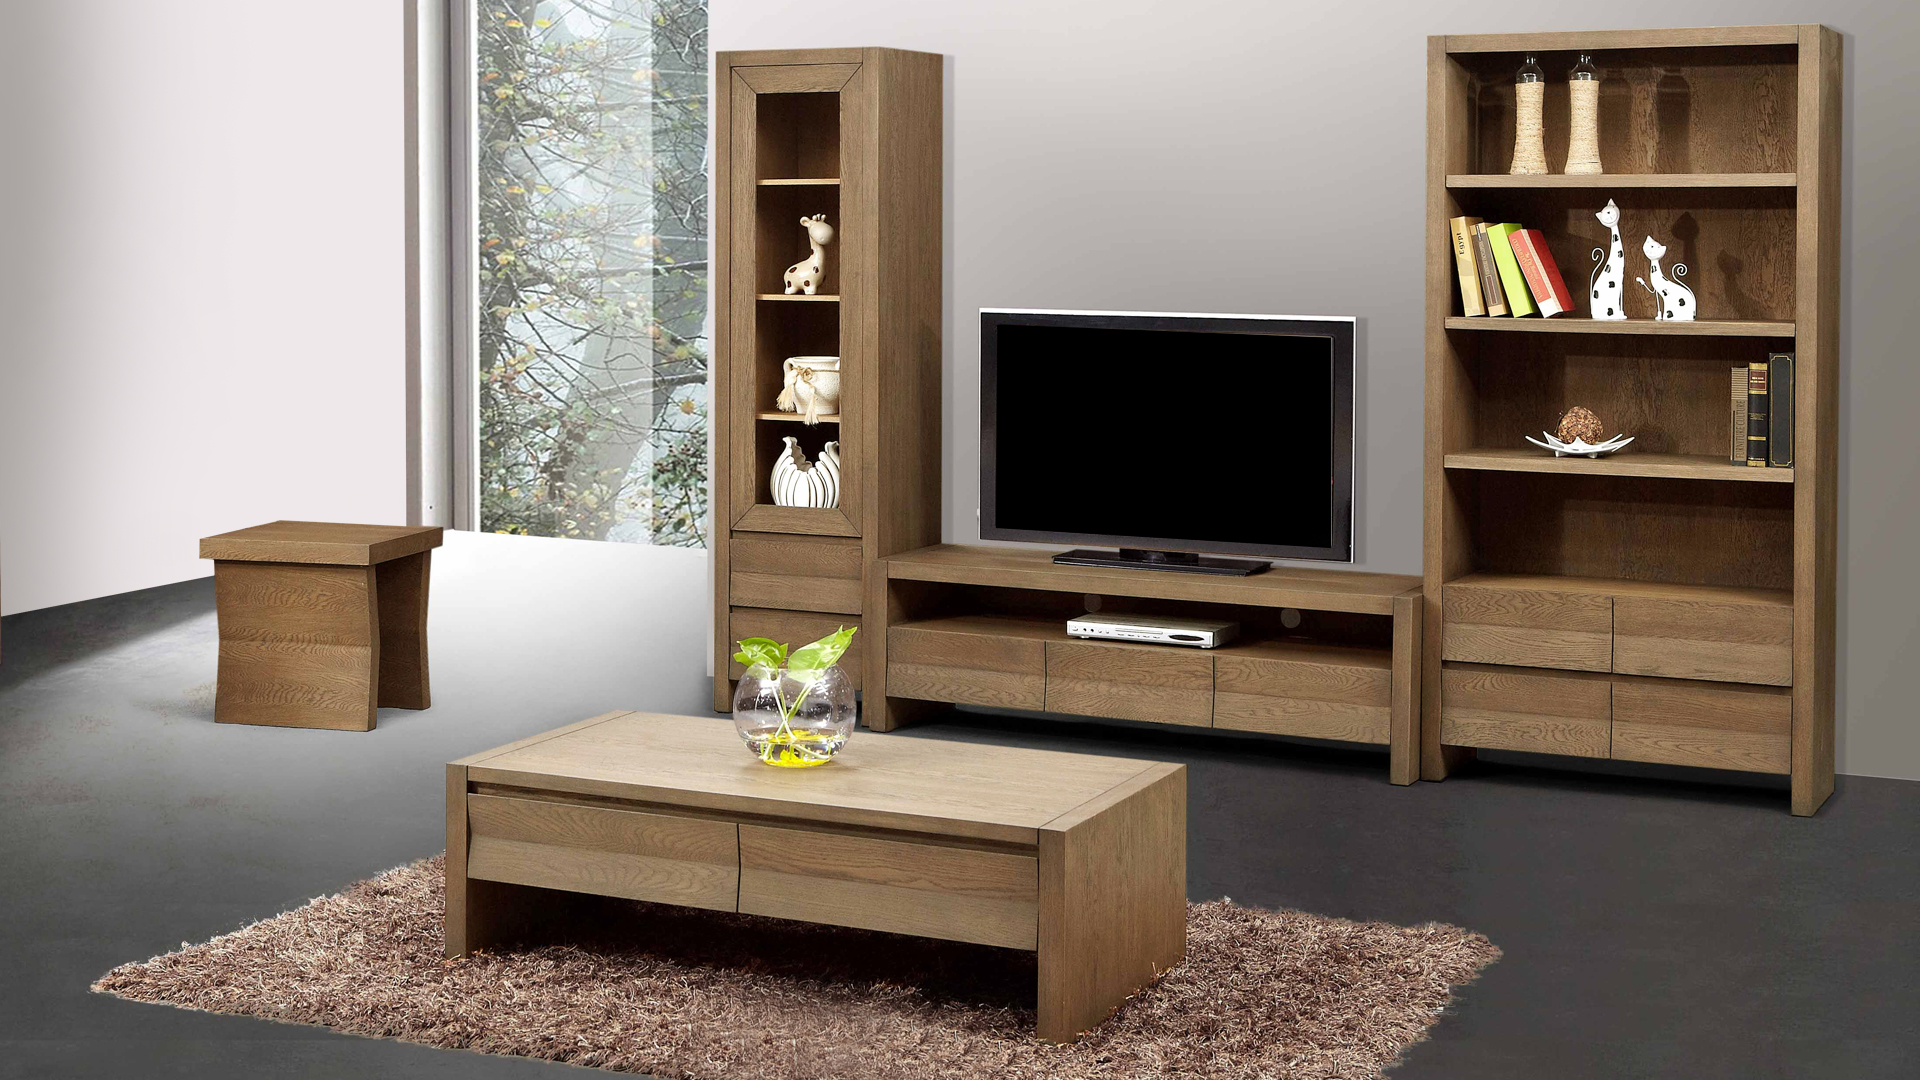 model meuble salon en bois. Black Bedroom Furniture Sets. Home Design Ideas